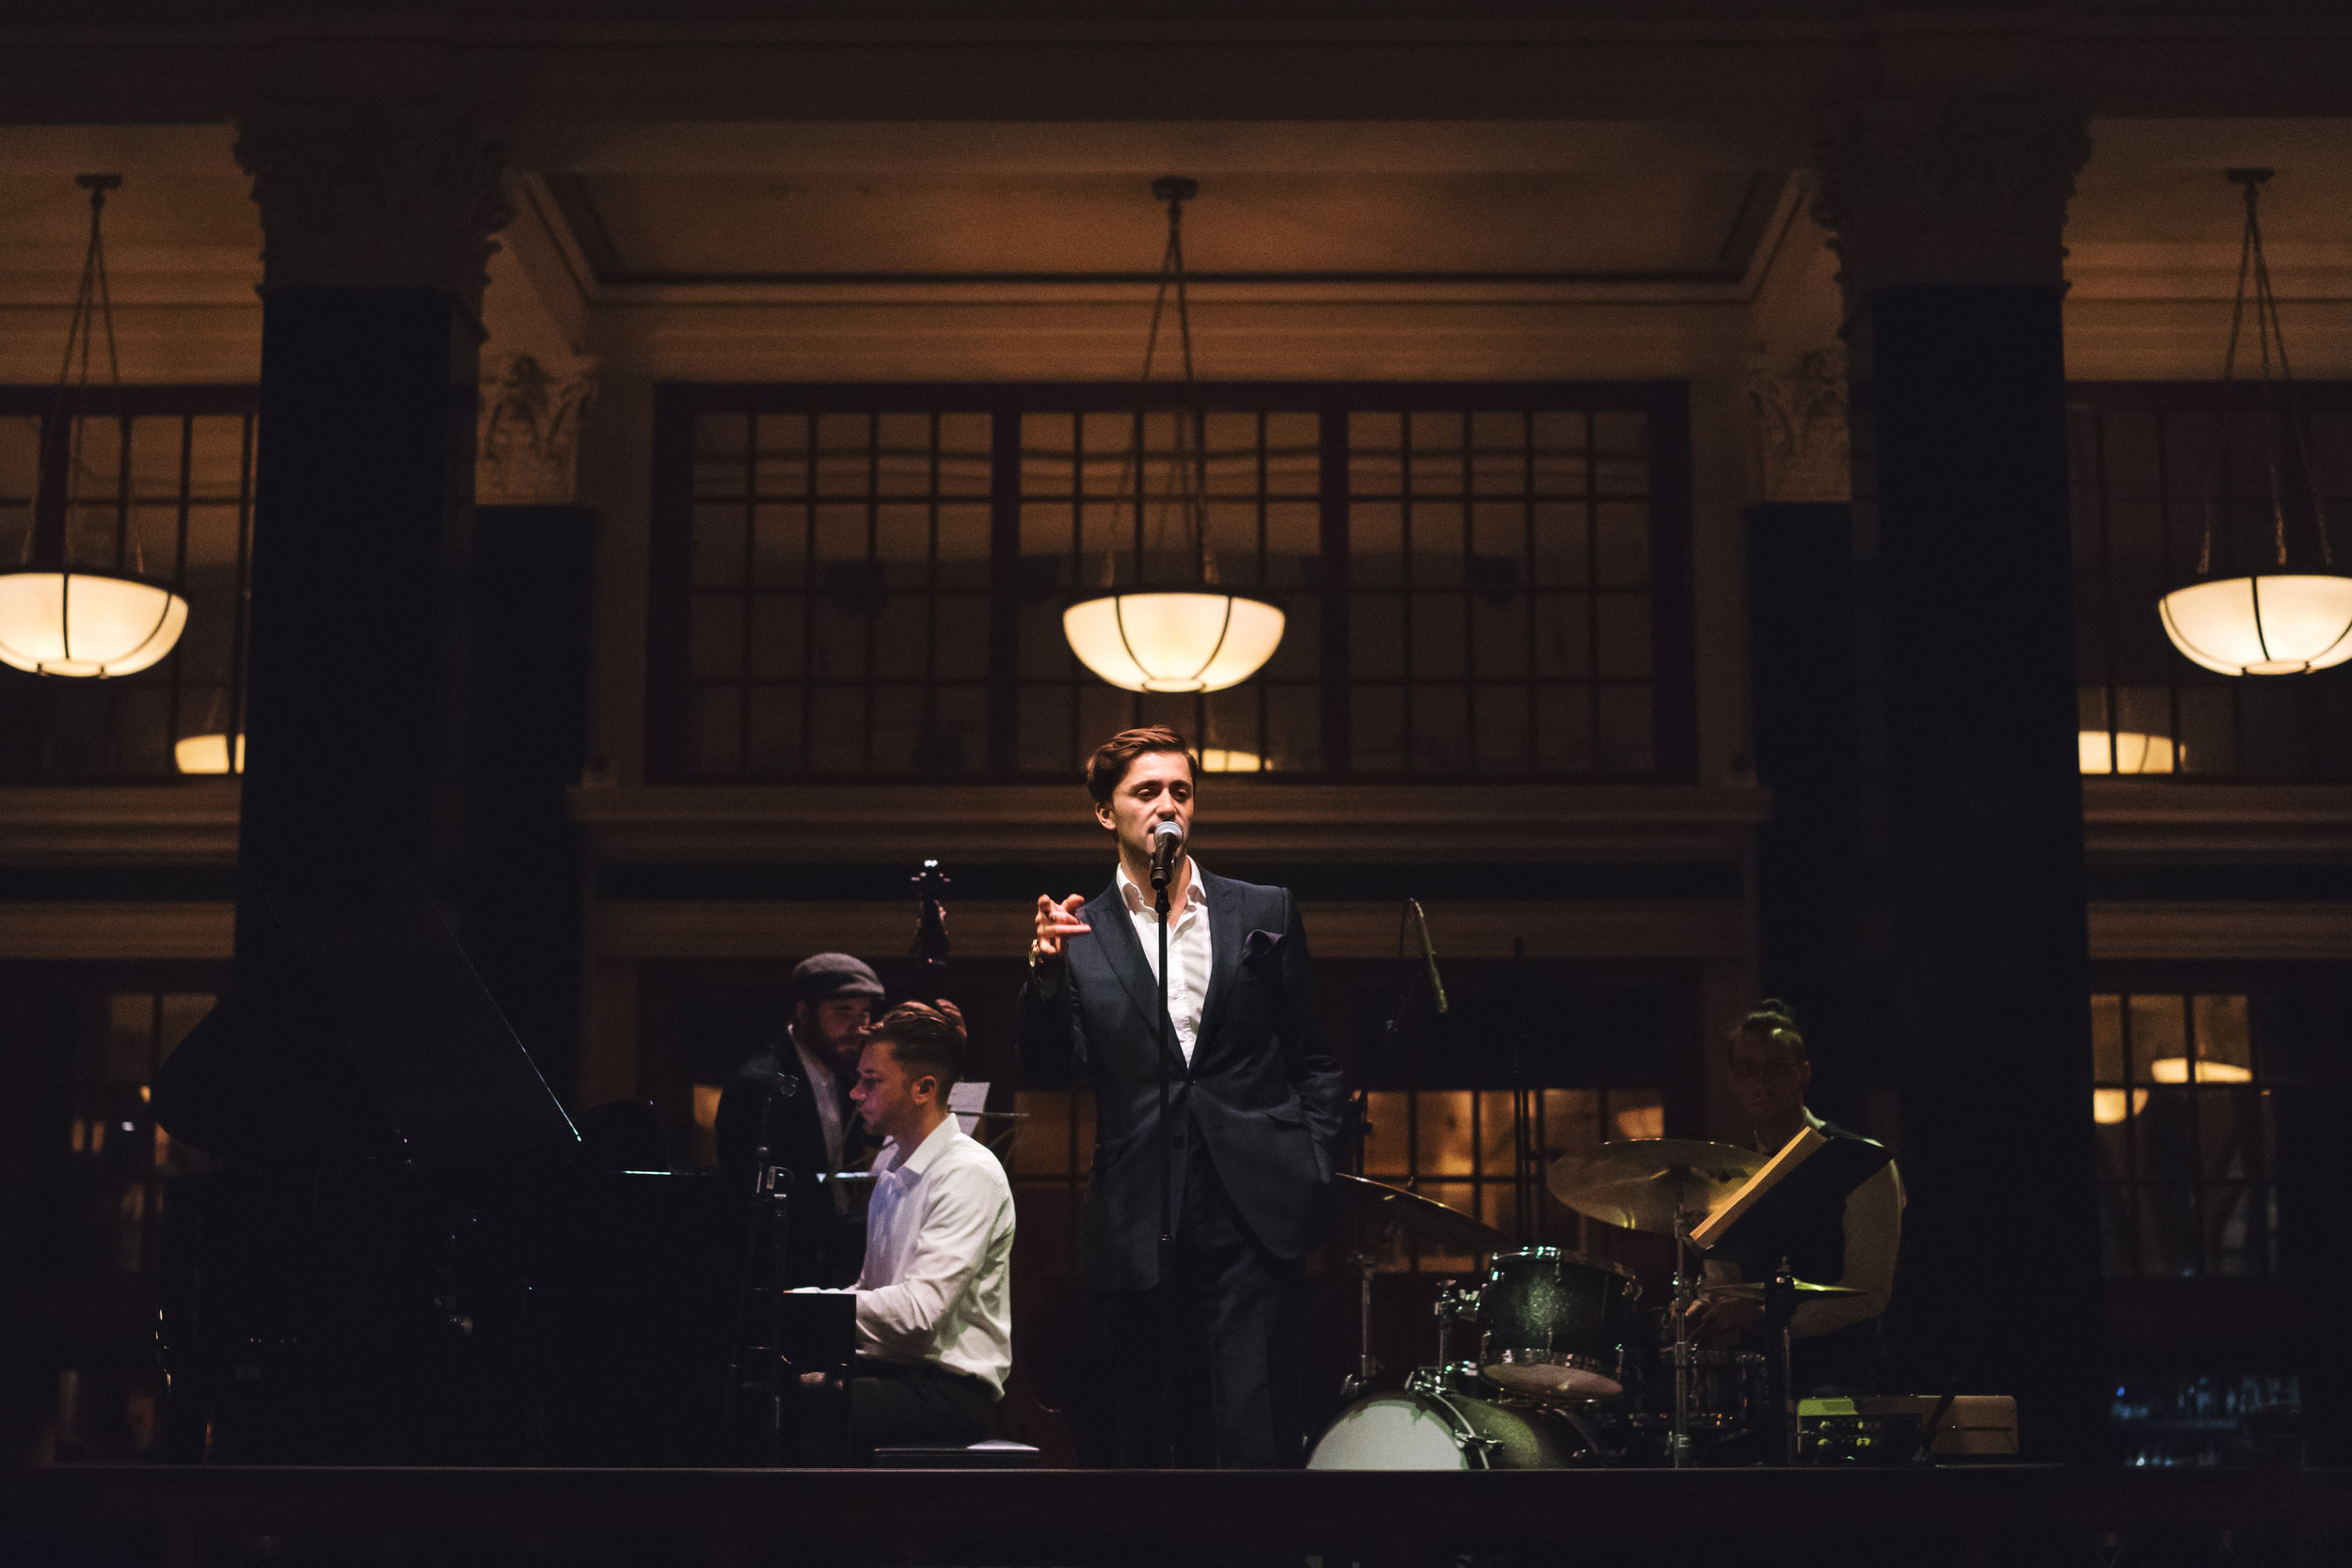 The Leon Garner Jazz Trio performs classic hits from the golden era of jazz. The perfect ambience for a classy event.